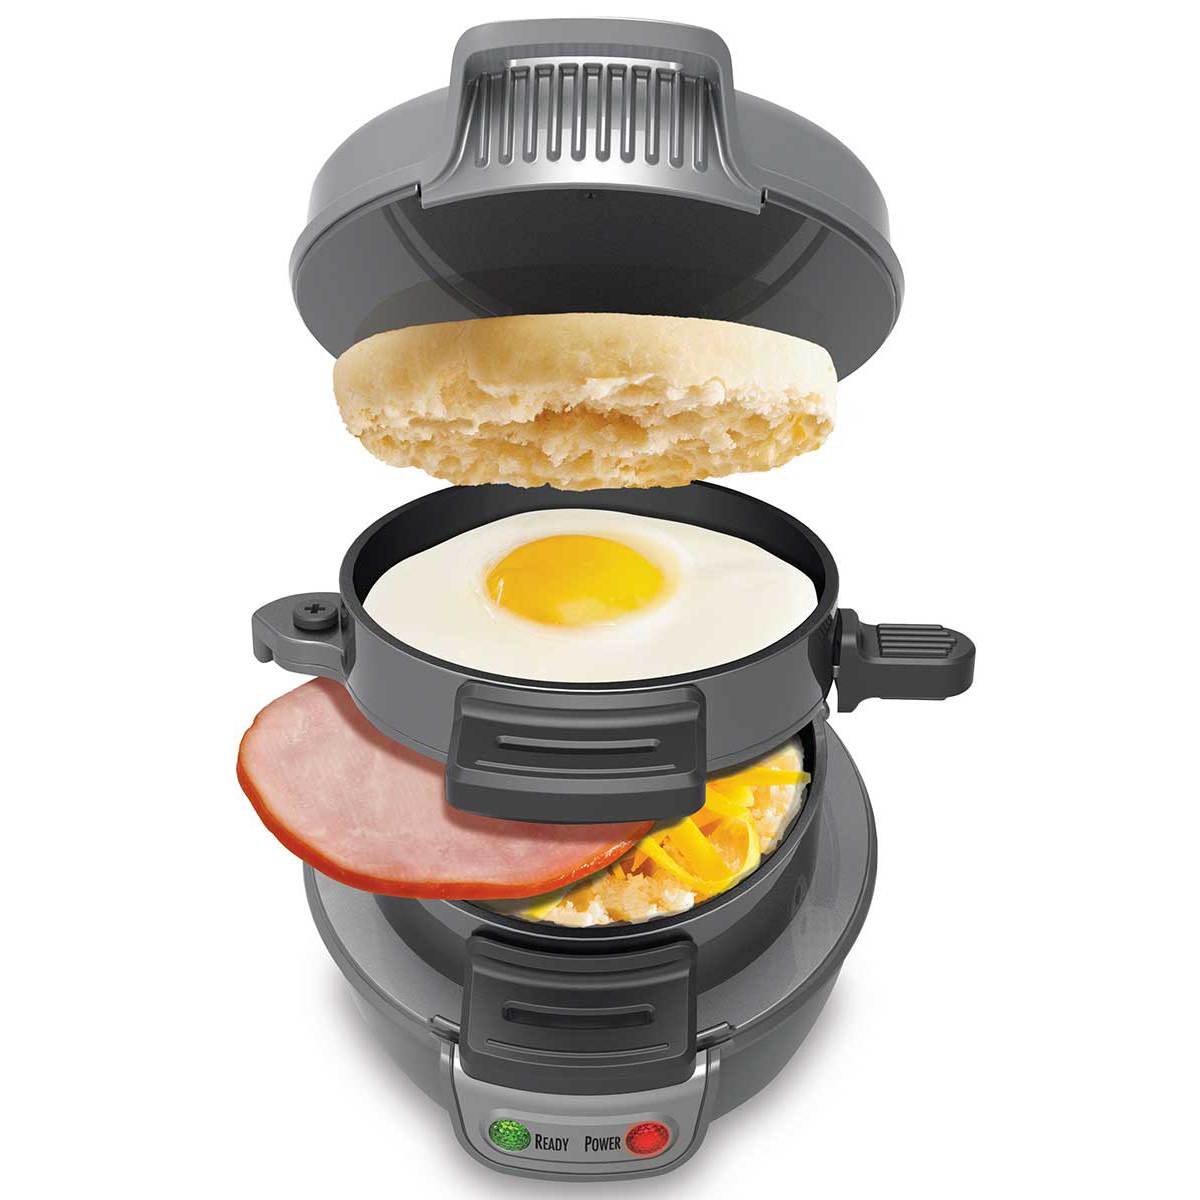 Breakfast Sandwich Makers Hamiltonbeach Com